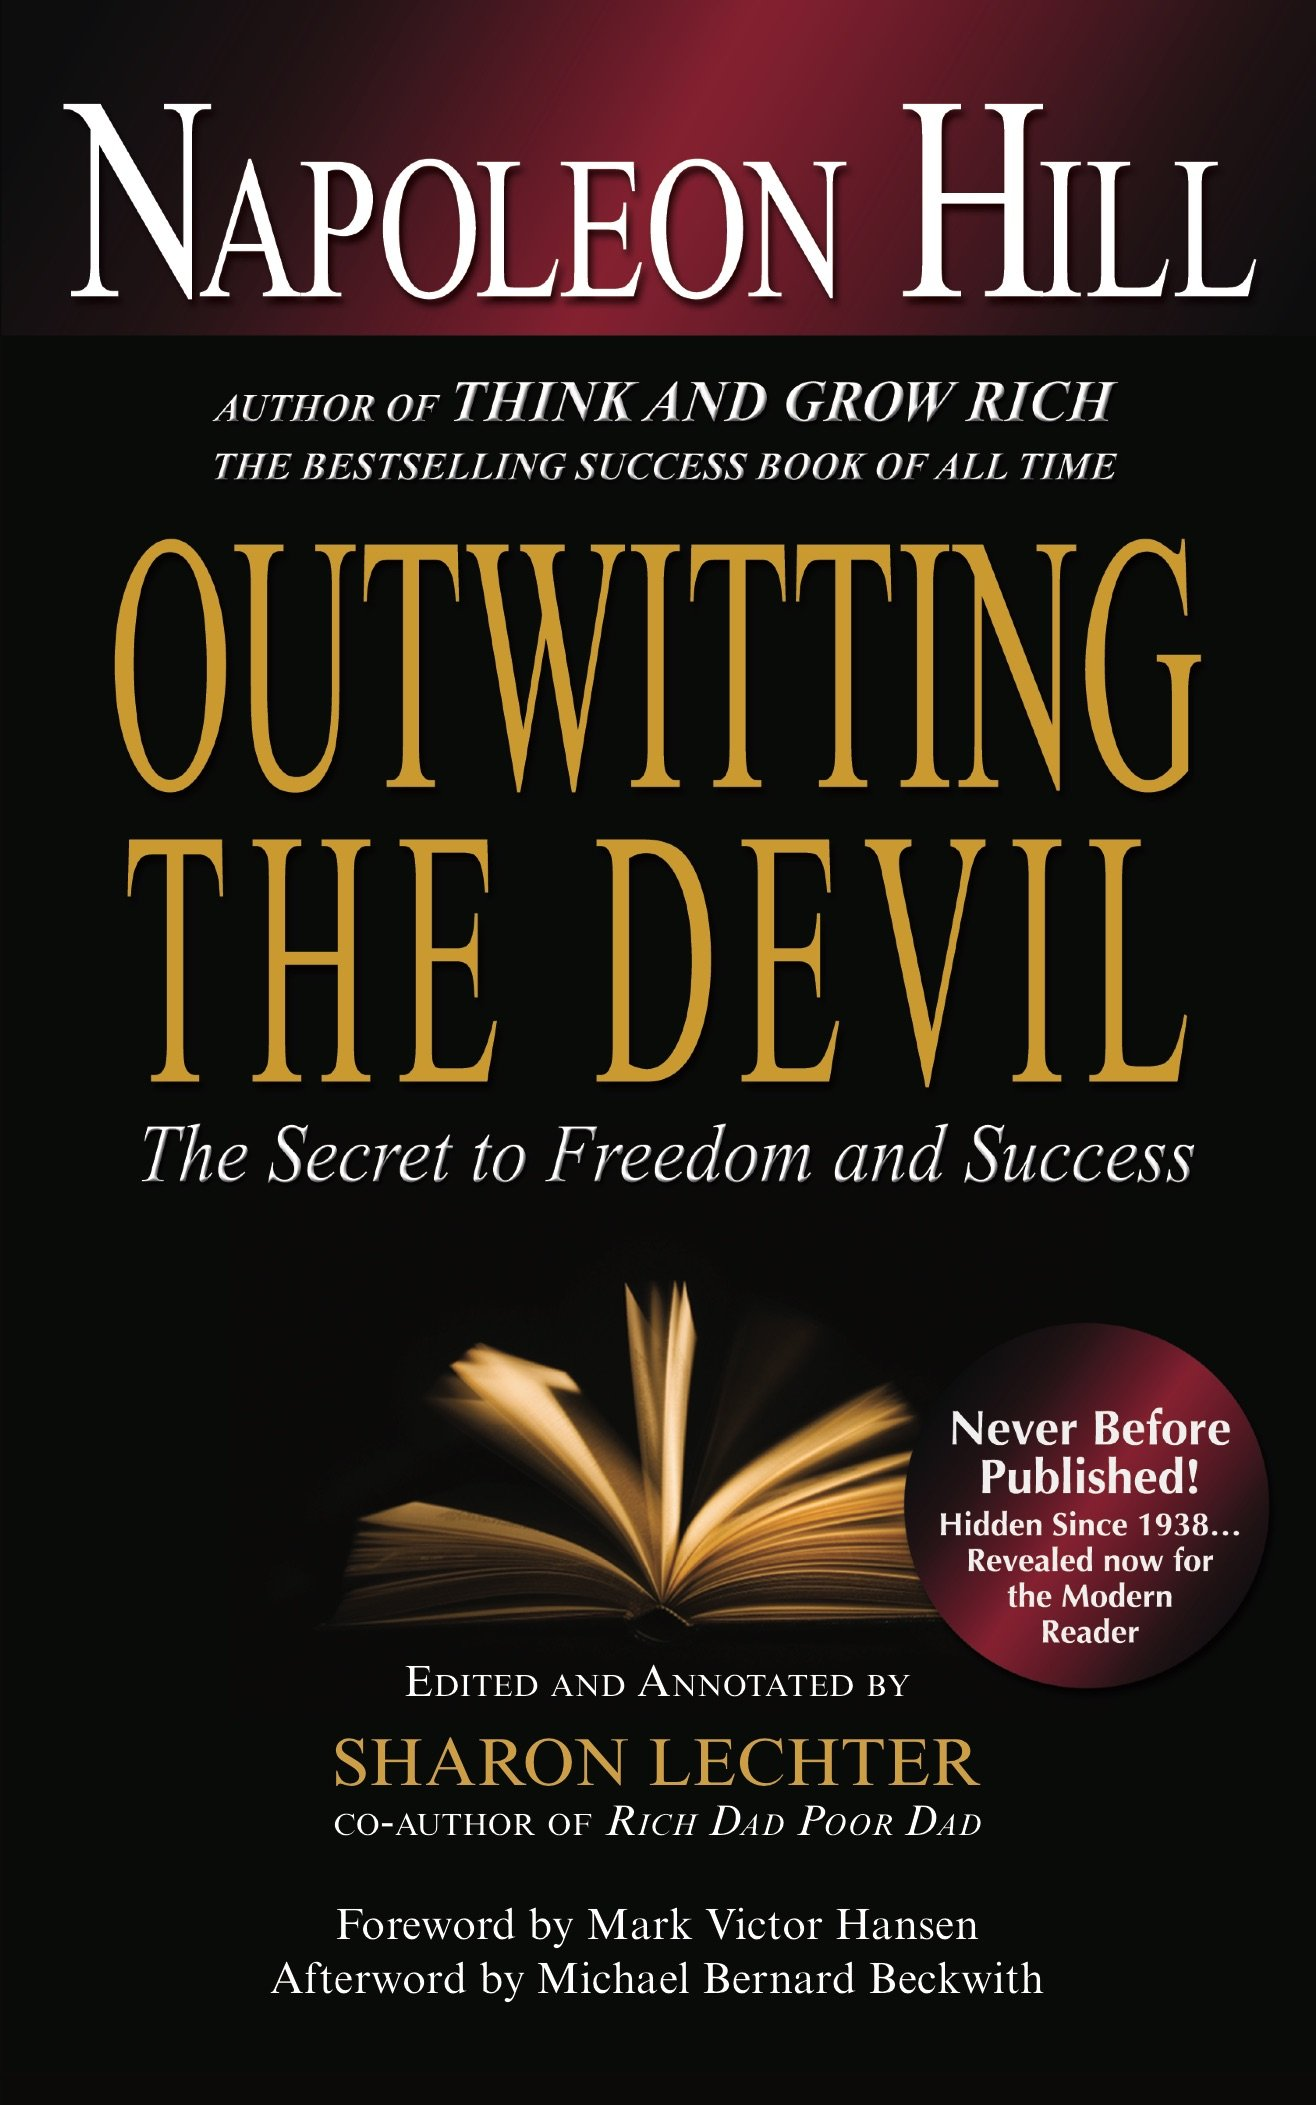 Outwitting the devil the secret to freedom and success napoleon the secret to freedom and success napoleon hill sharon l lechter cpa michael bernard beckwith mark victor hansen 9781454900672 amazon books solutioingenieria Image collections